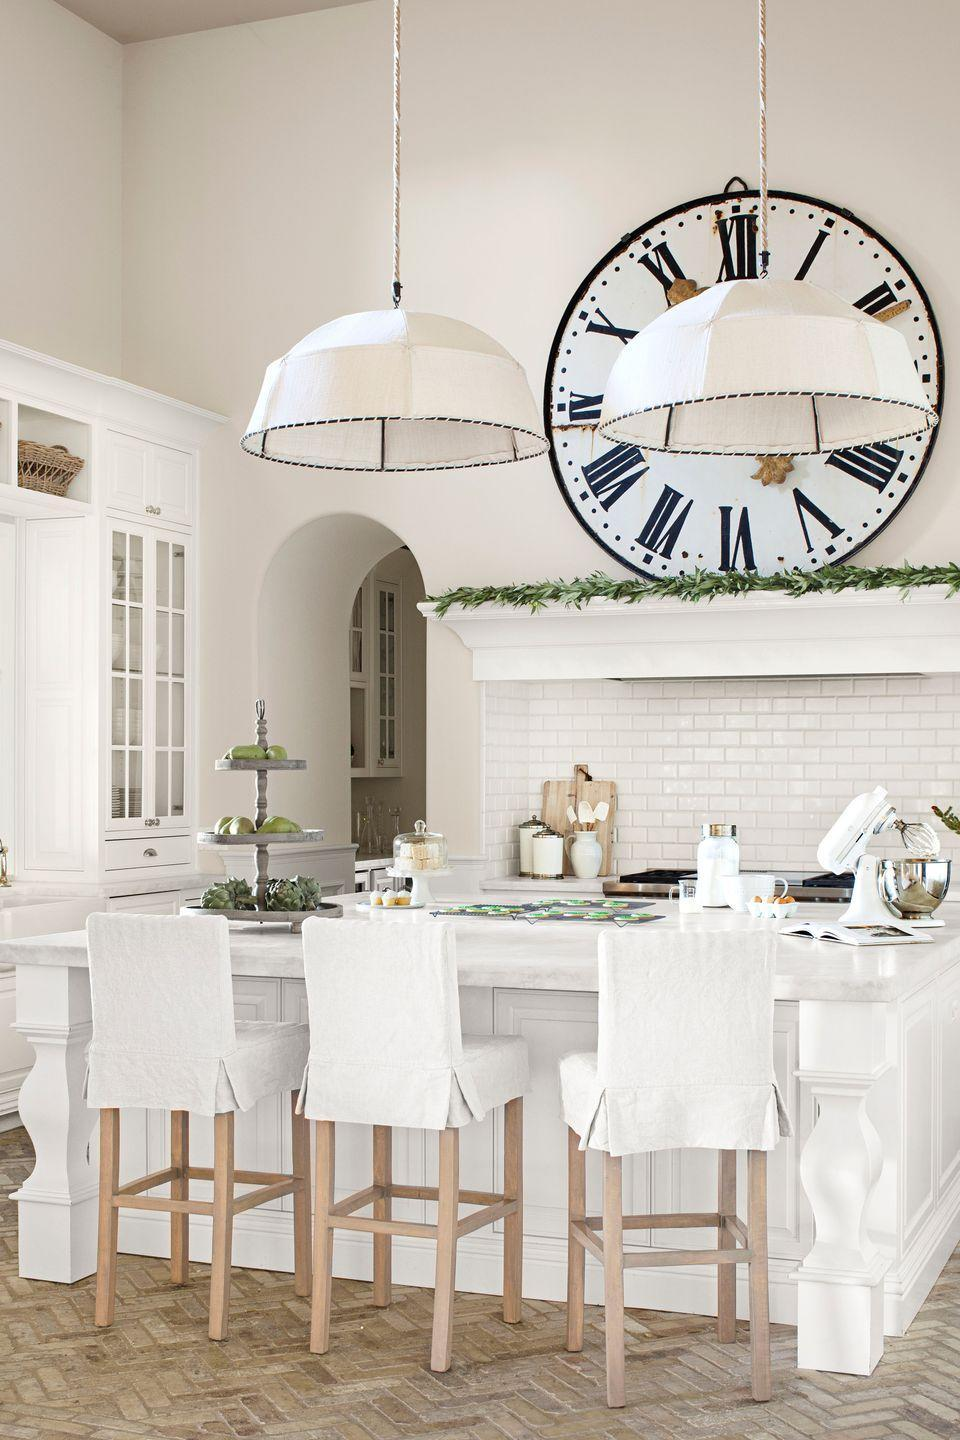 """<p>In this <a href=""""https://www.countryliving.com/home-design/house-tours/g1401/arizona-christmas-decorating-ideas/"""" rel=""""nofollow noopener"""" target=""""_blank"""" data-ylk=""""slk:Arizona home"""" class=""""link rapid-noclick-resp"""">Arizona home</a> decorated with tons of New England charm, linen-covered pendant lamps bring the kitchen's 17-foot ceilings down to a cozy scale. The owner bought the giant train-station clock on 1stdibs.com, then had the timepiece mounted to look as if it's casually propped above her Wolf range. White marble tops the custom cabinets and island. The walls are painted Exclusive Ivory and the trim Cottage White, both by Dunn-Edwards. </p>"""